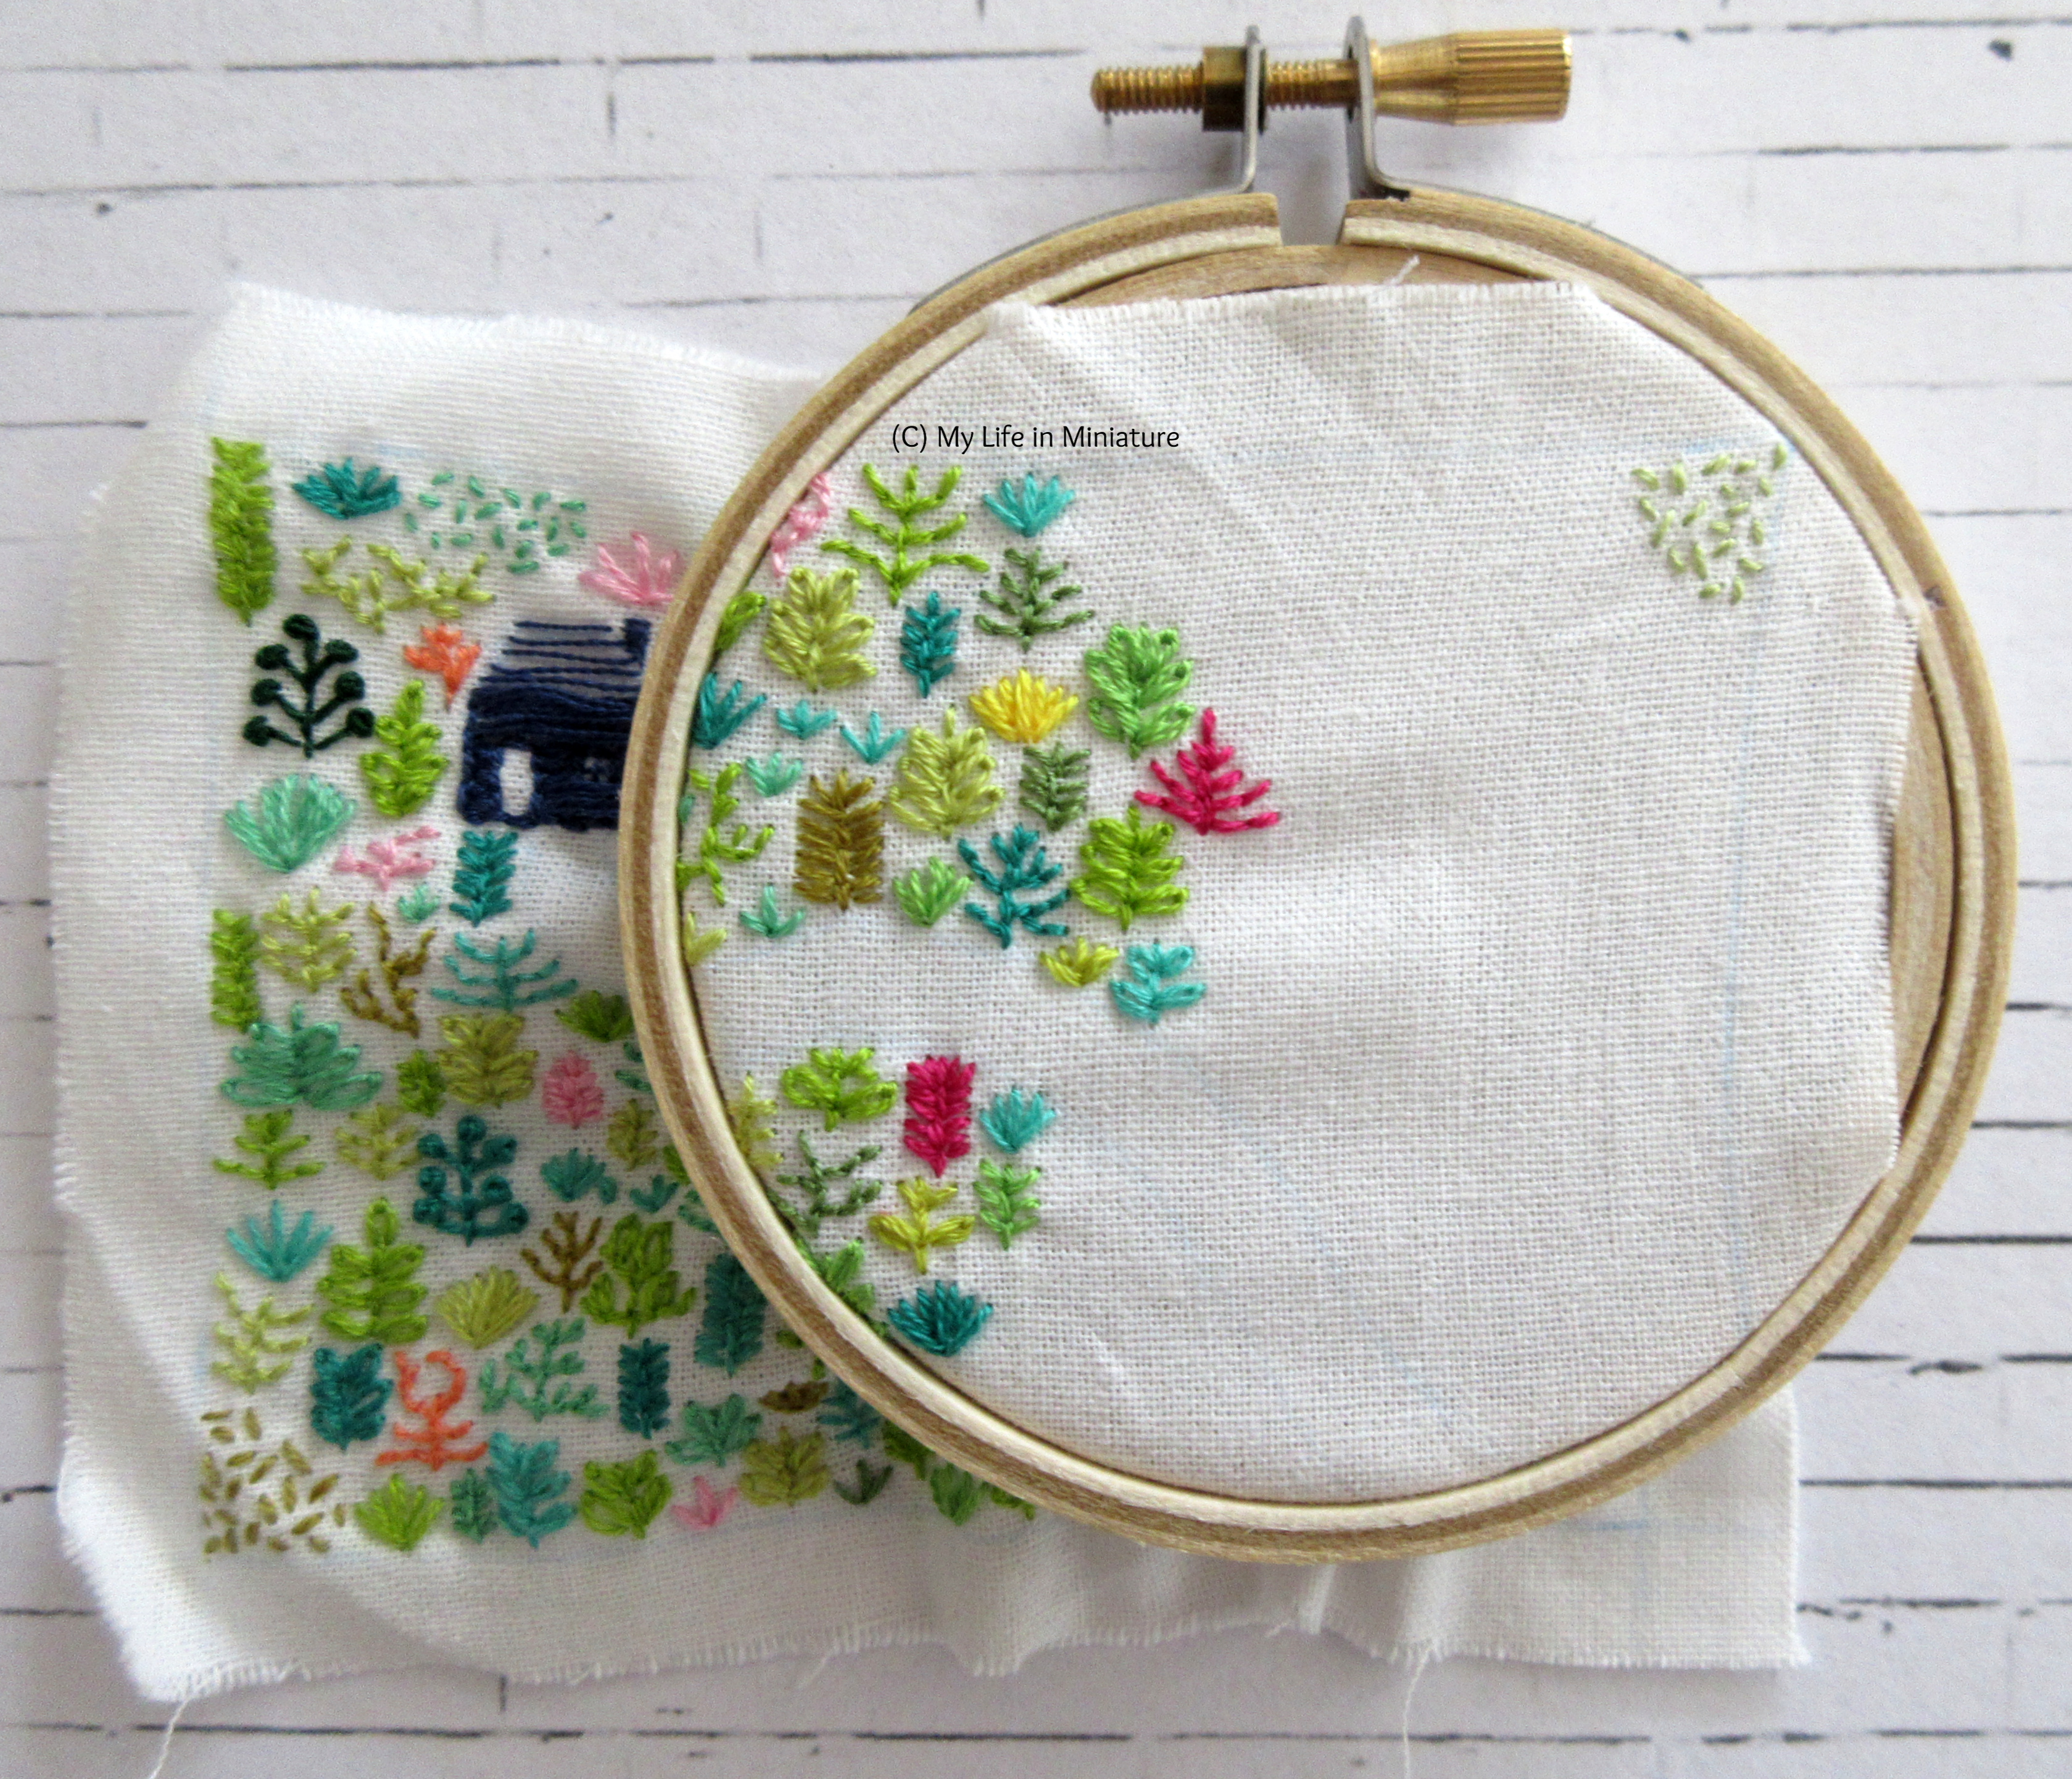 White fabric is in an embroidery hoop. Stitched on it is a small navy blue house, and an assortment of plants in different colours. The hoop is in the top-right corner of the fabric, and it's partially filled with plants.